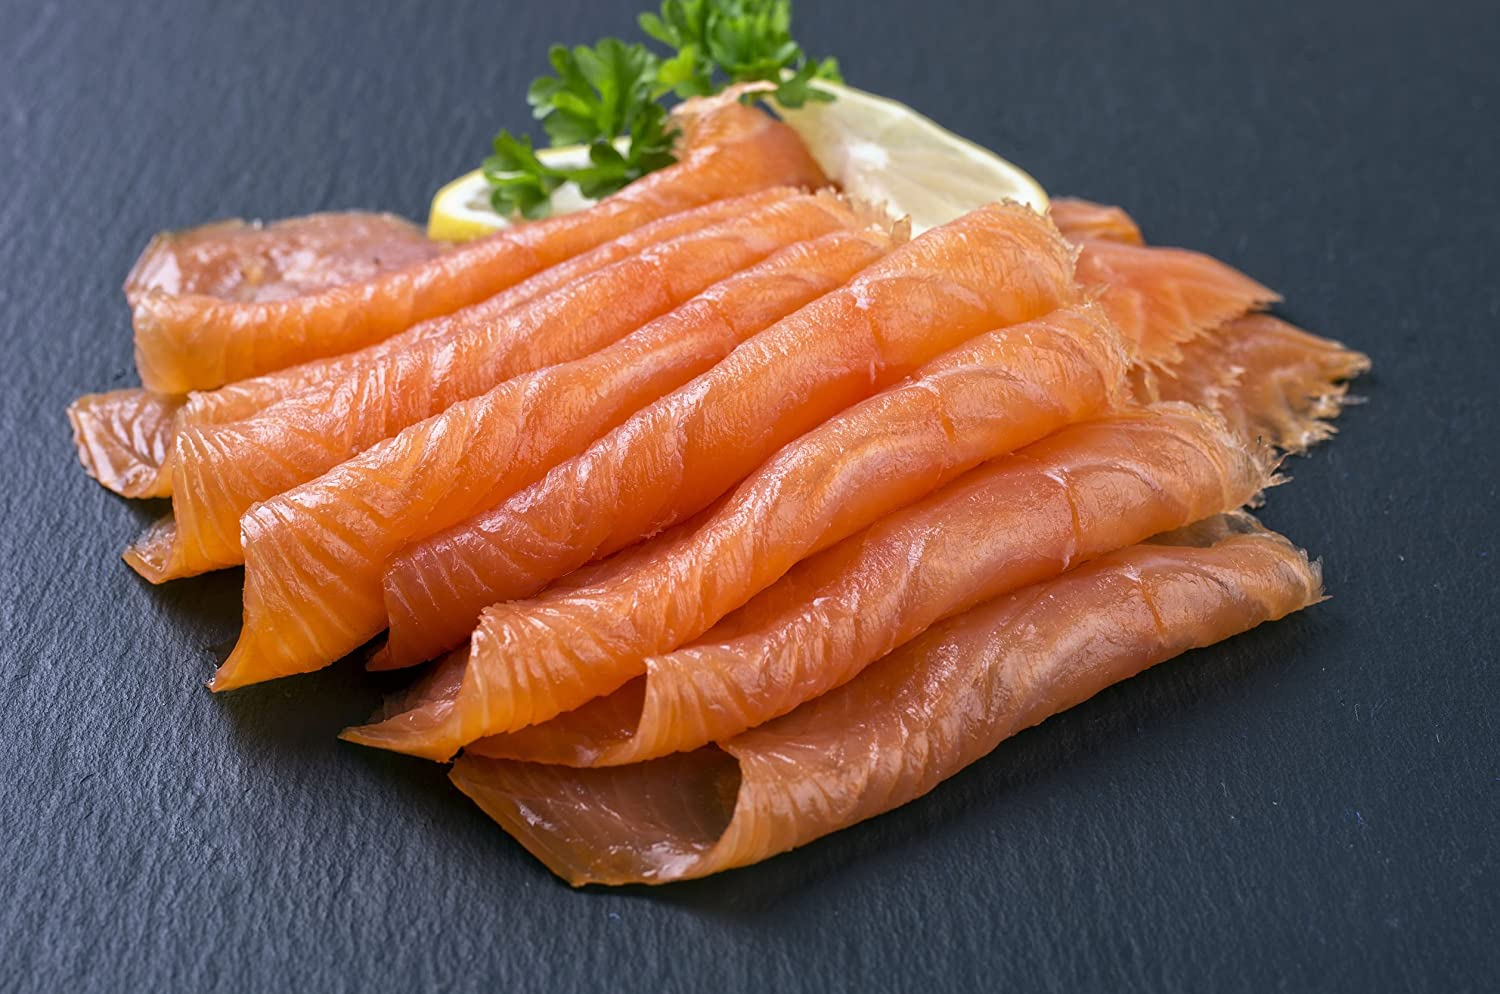 5 X 4Oz  Most Awarded Pre-Sliced Smoked Salmon (Natural)